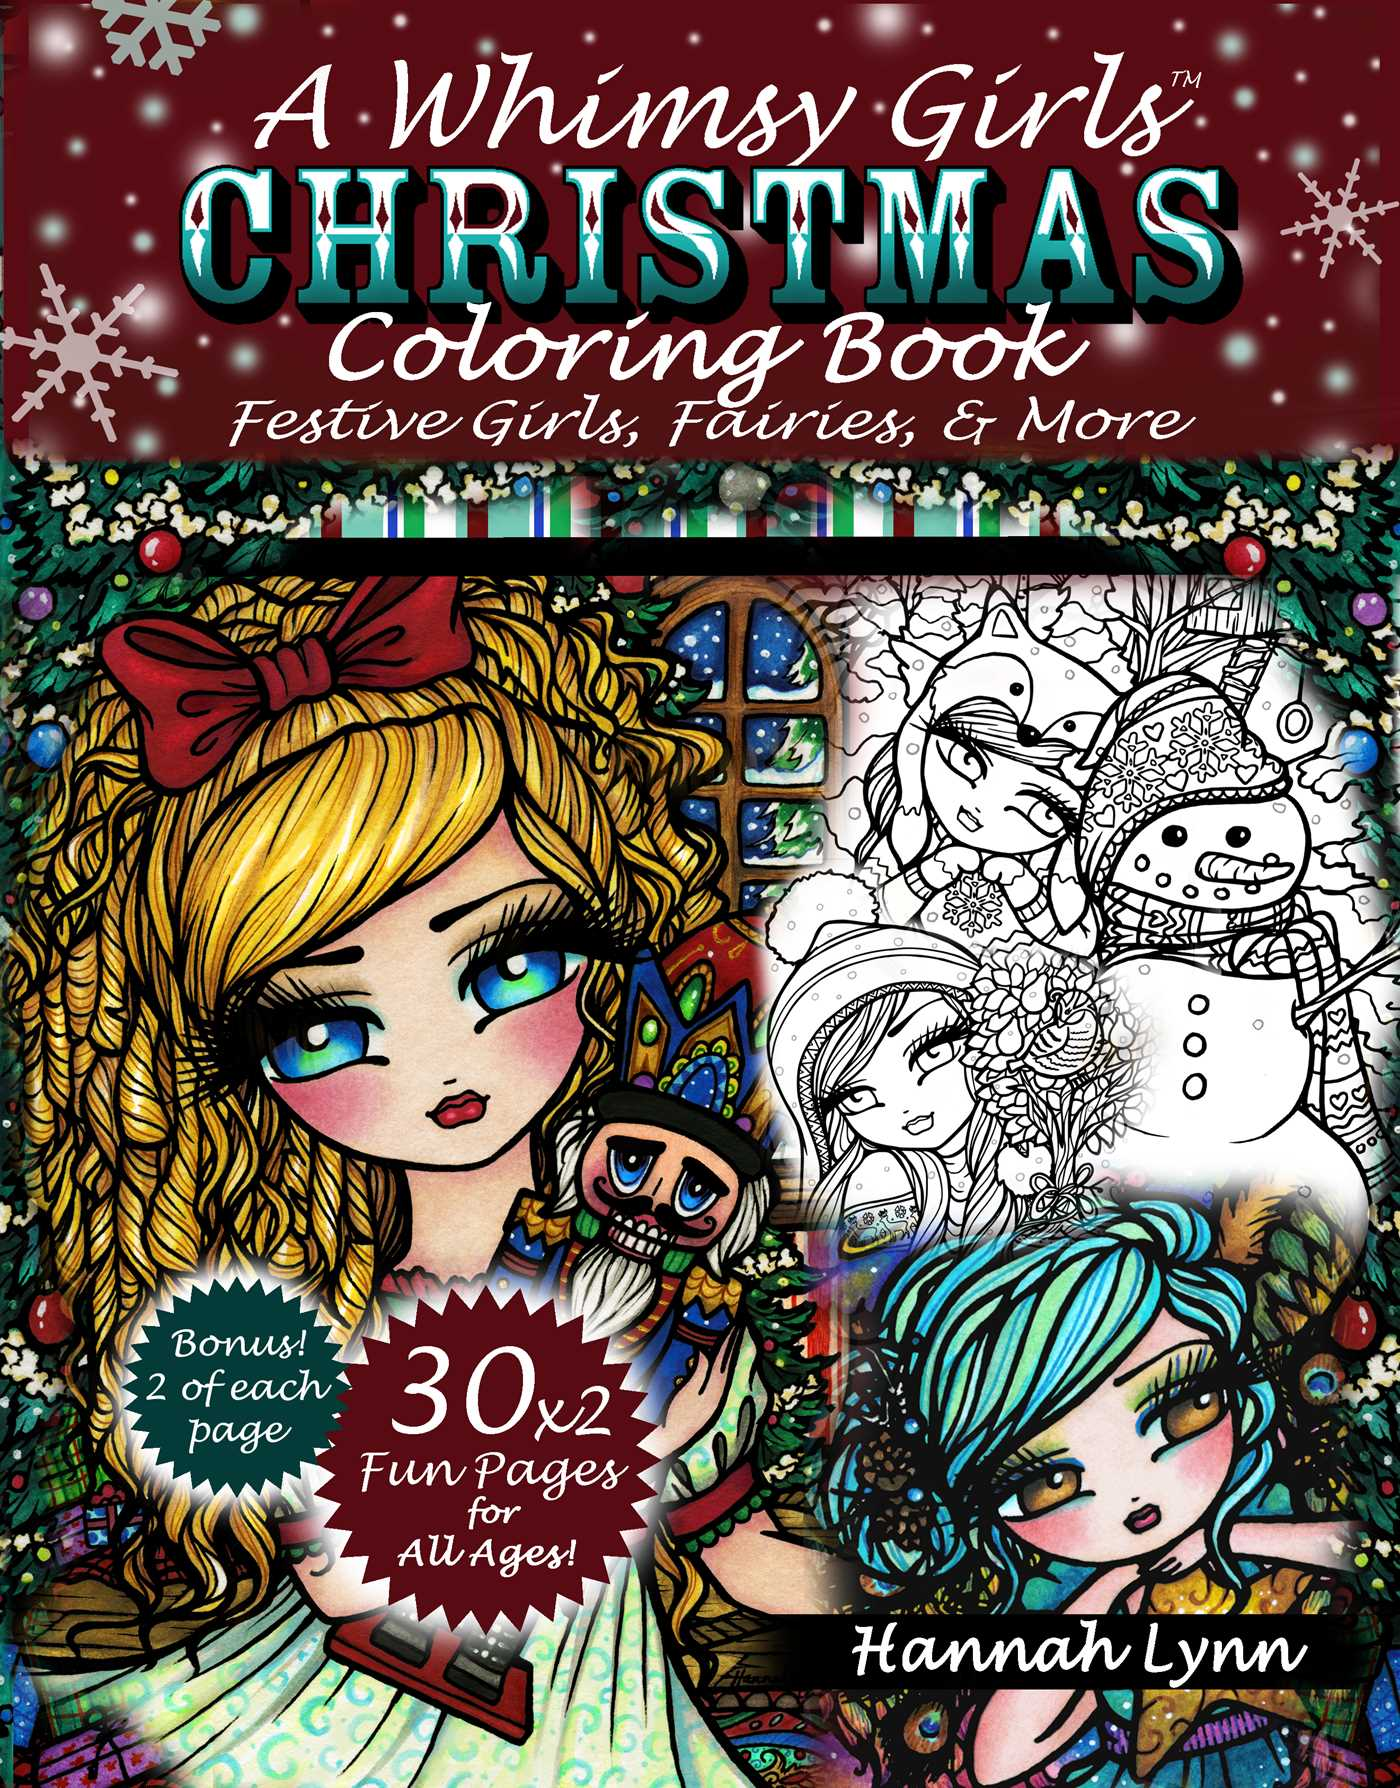 A Whimsy Girls Christmas Coloring Book | Book by Hannah Lynn ...